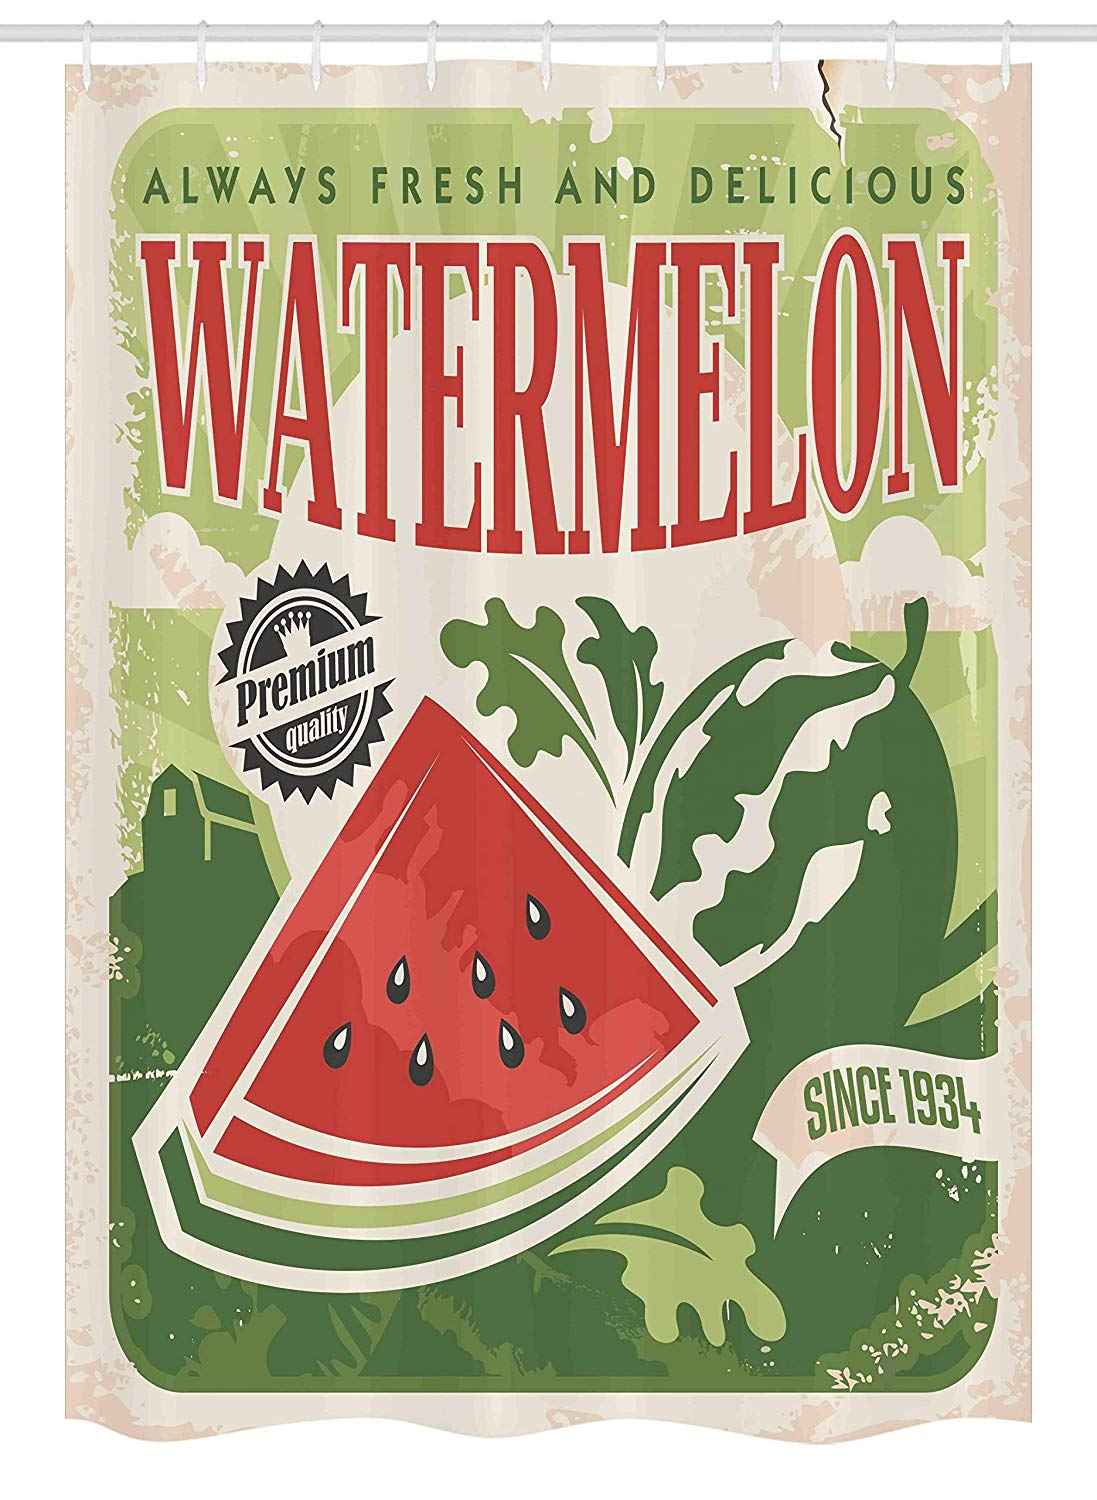 Ambesonne Vintage Stall Shower Curtain, Vintage Old Fashioned Funny Watermelon with Faded Colors Classic Graphic Art, Fabric Bathroom Decor Set with Hooks, 54 W x 78 L Inches, Green Red Ecru